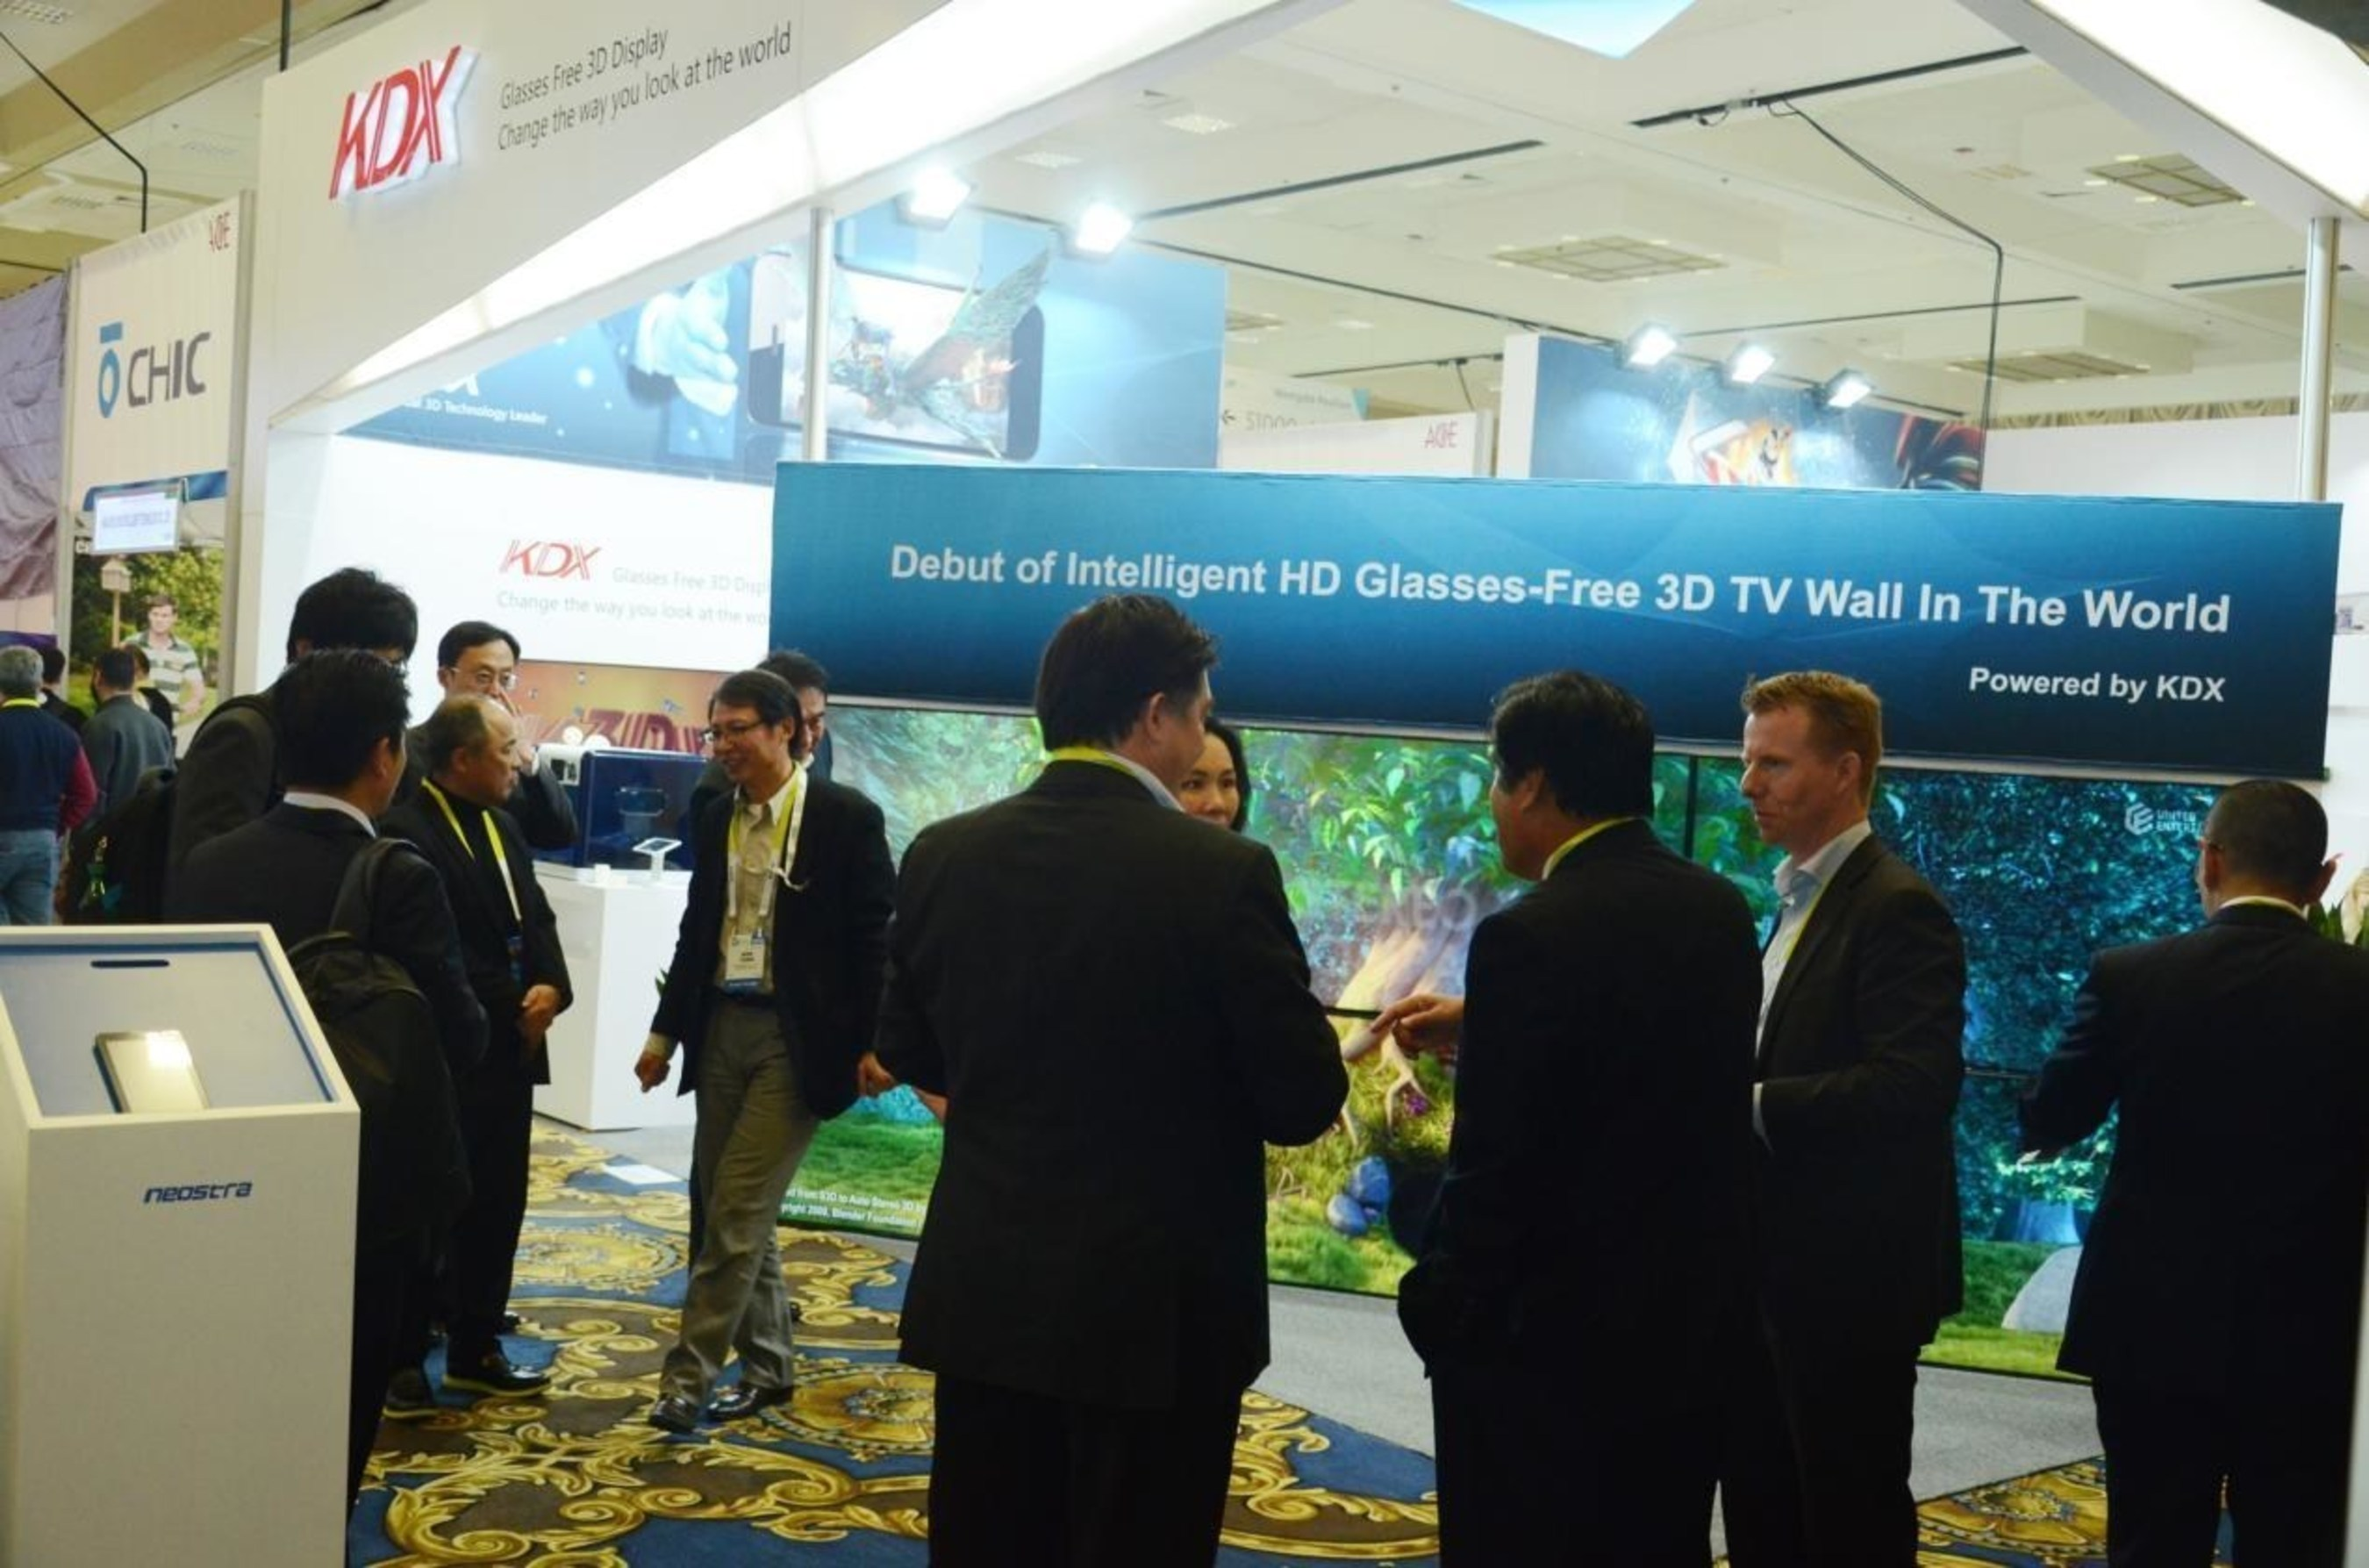 Debut of intelligent HD glasses-free 3D TV wall attracted much attention